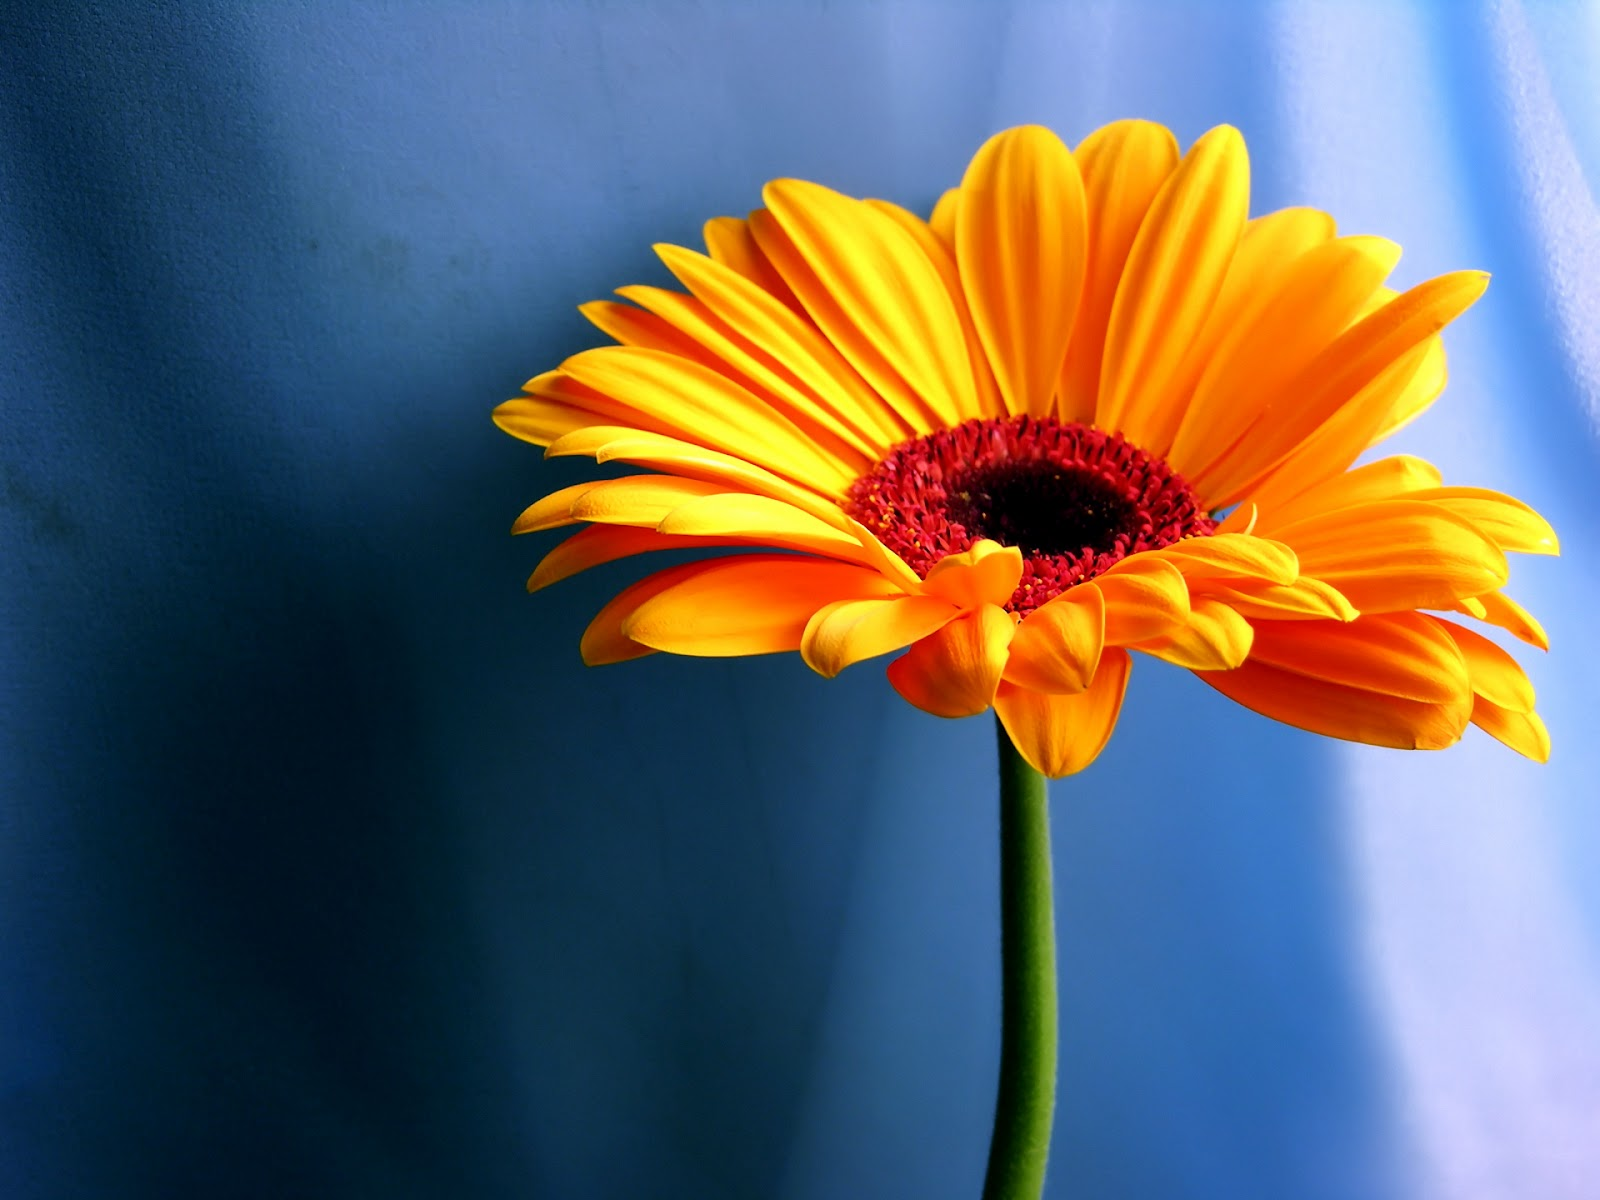 flowers for flower lovers Daisy flowers desktop wallpapers 1600x1200